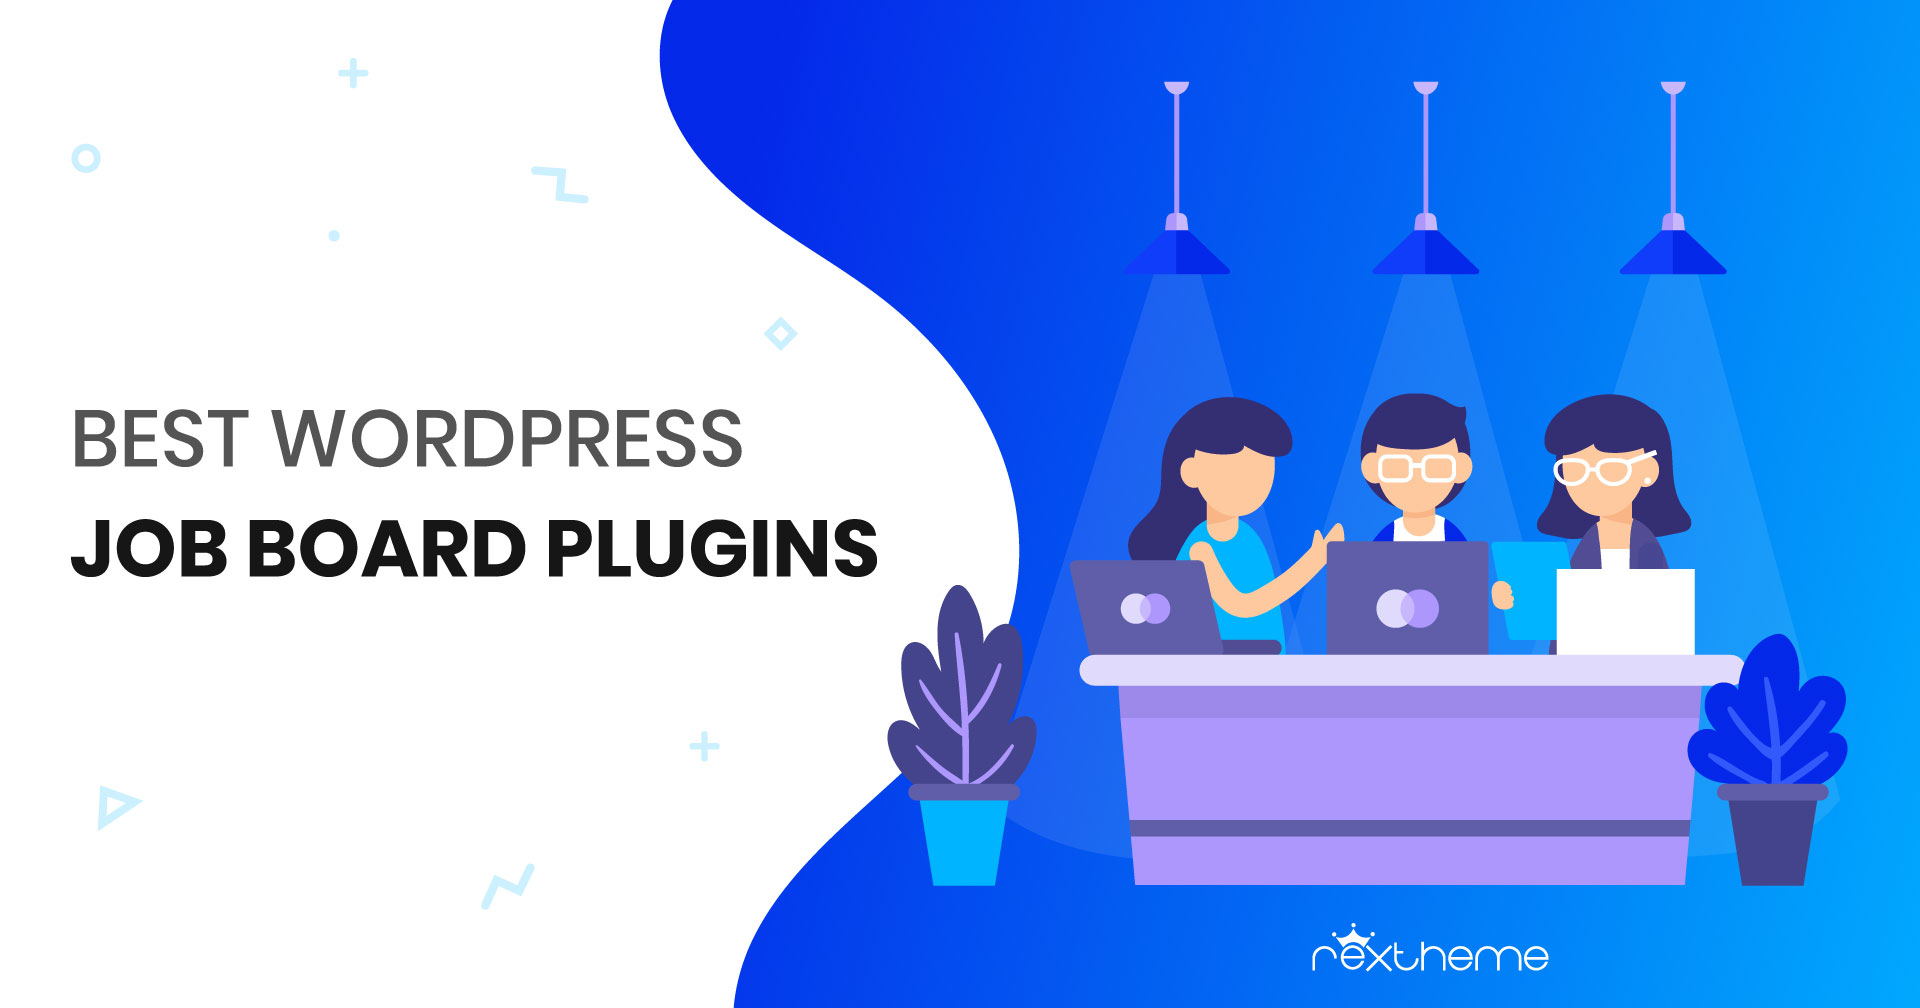 5 Best WordPress Job Board Plugins [2021]